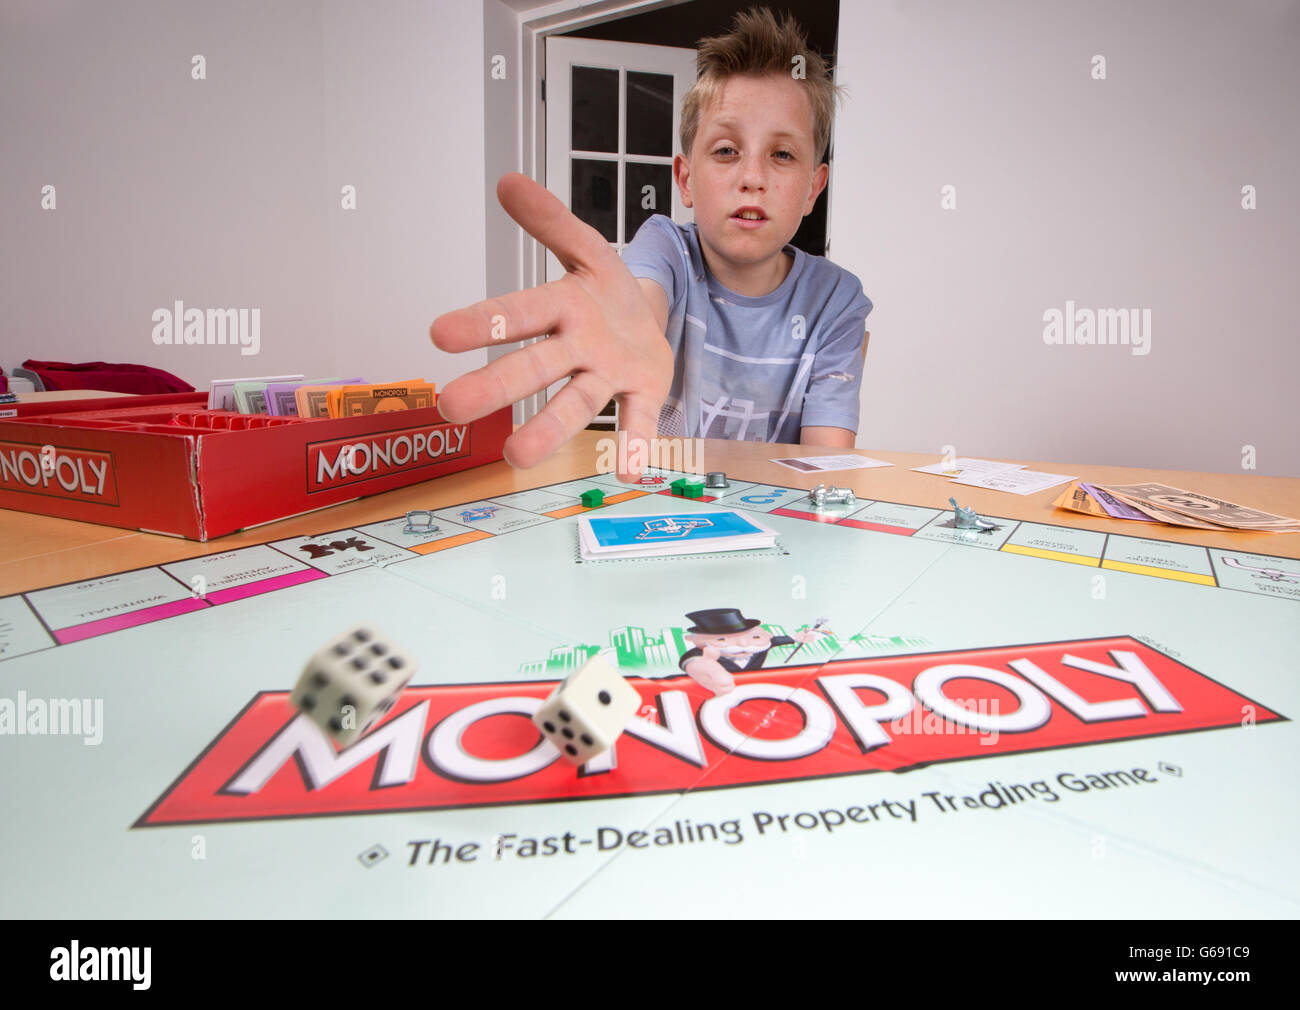 A boy playing the board game Monopoly - Stock Image